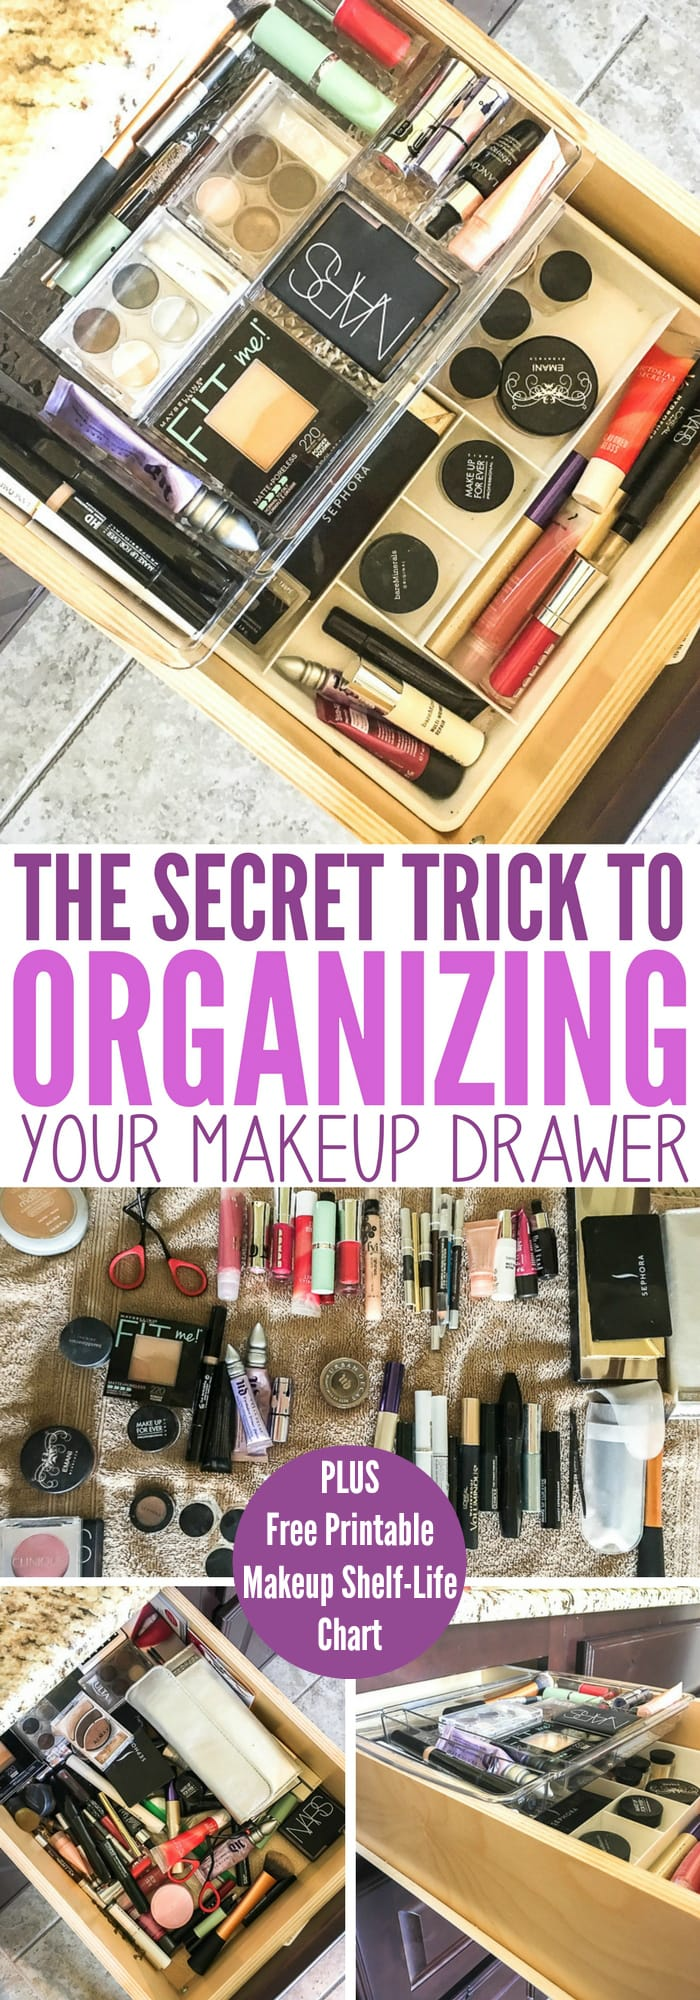 secret trick to organizing your makeup drawer collage of photos